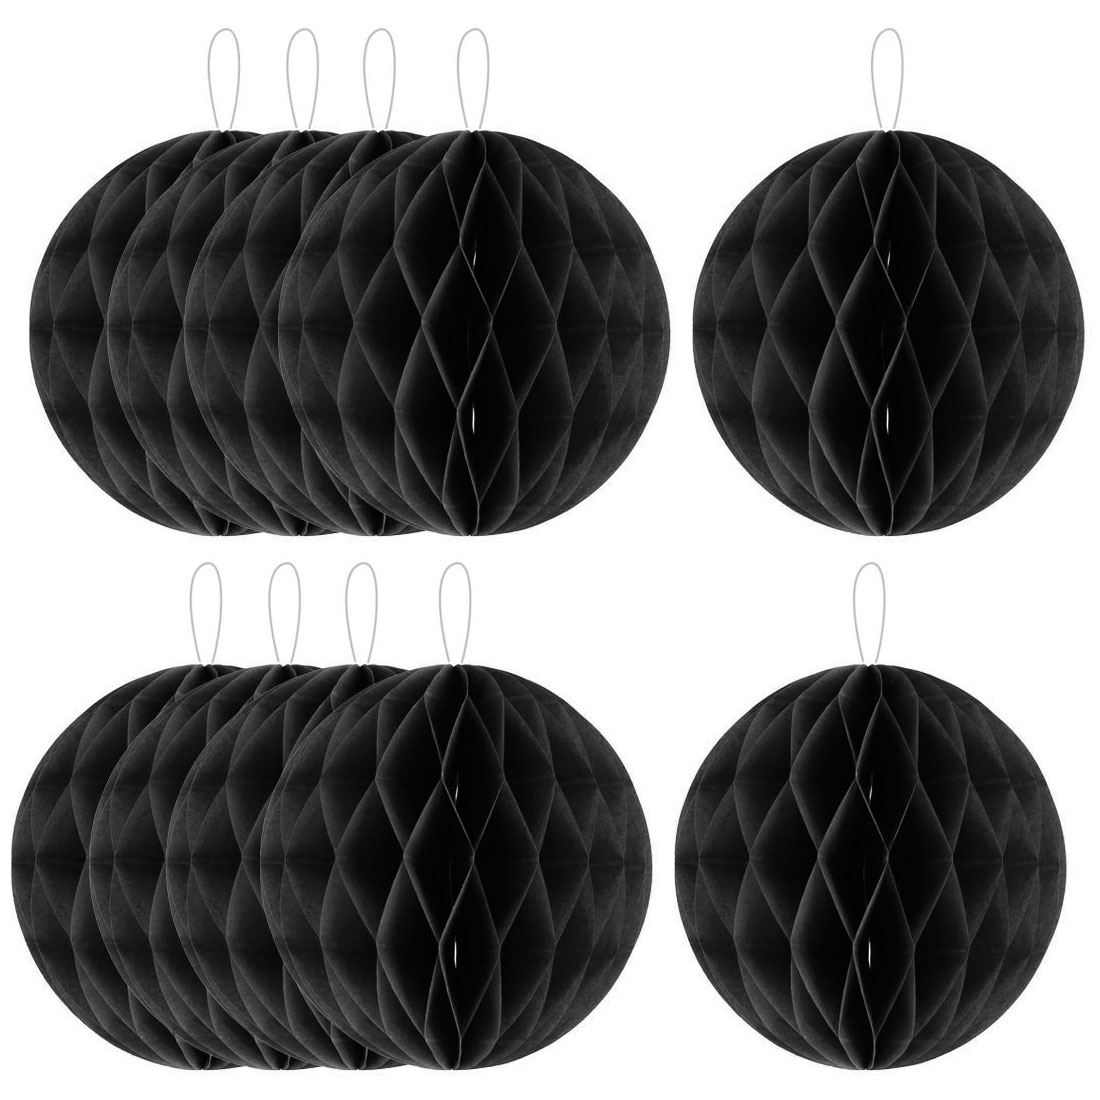 Household Party Paper Wall Window Door DIY Decoration Honeycomb Ball Black 12 Inch Dia 10 Pcs